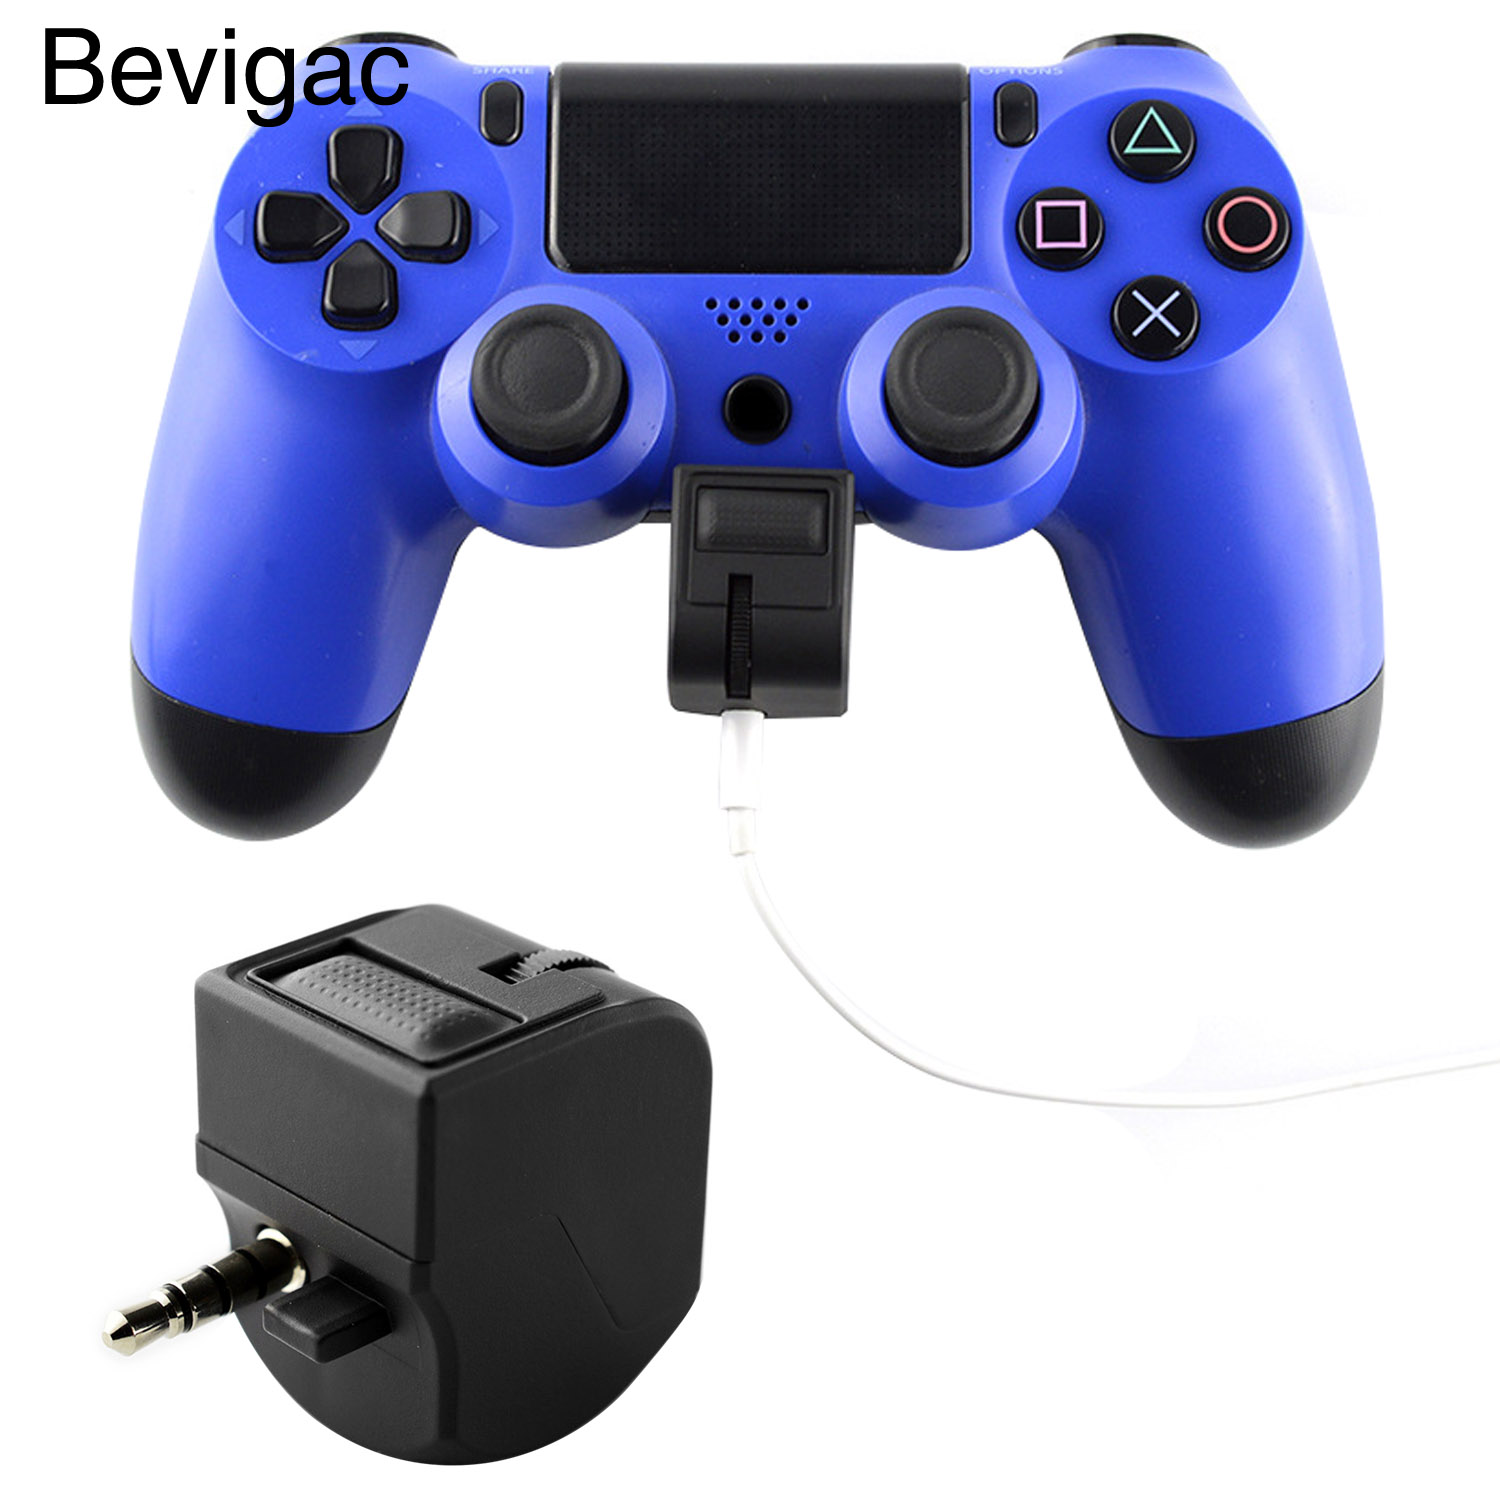 US $2 54 30% OFF|Bevigac 3 5mm Headphone Earphones Adapter w/Microphone  Earphone Volume Control for Sony PlayStation 4 PS4 Slim Pro Controller  VR-in